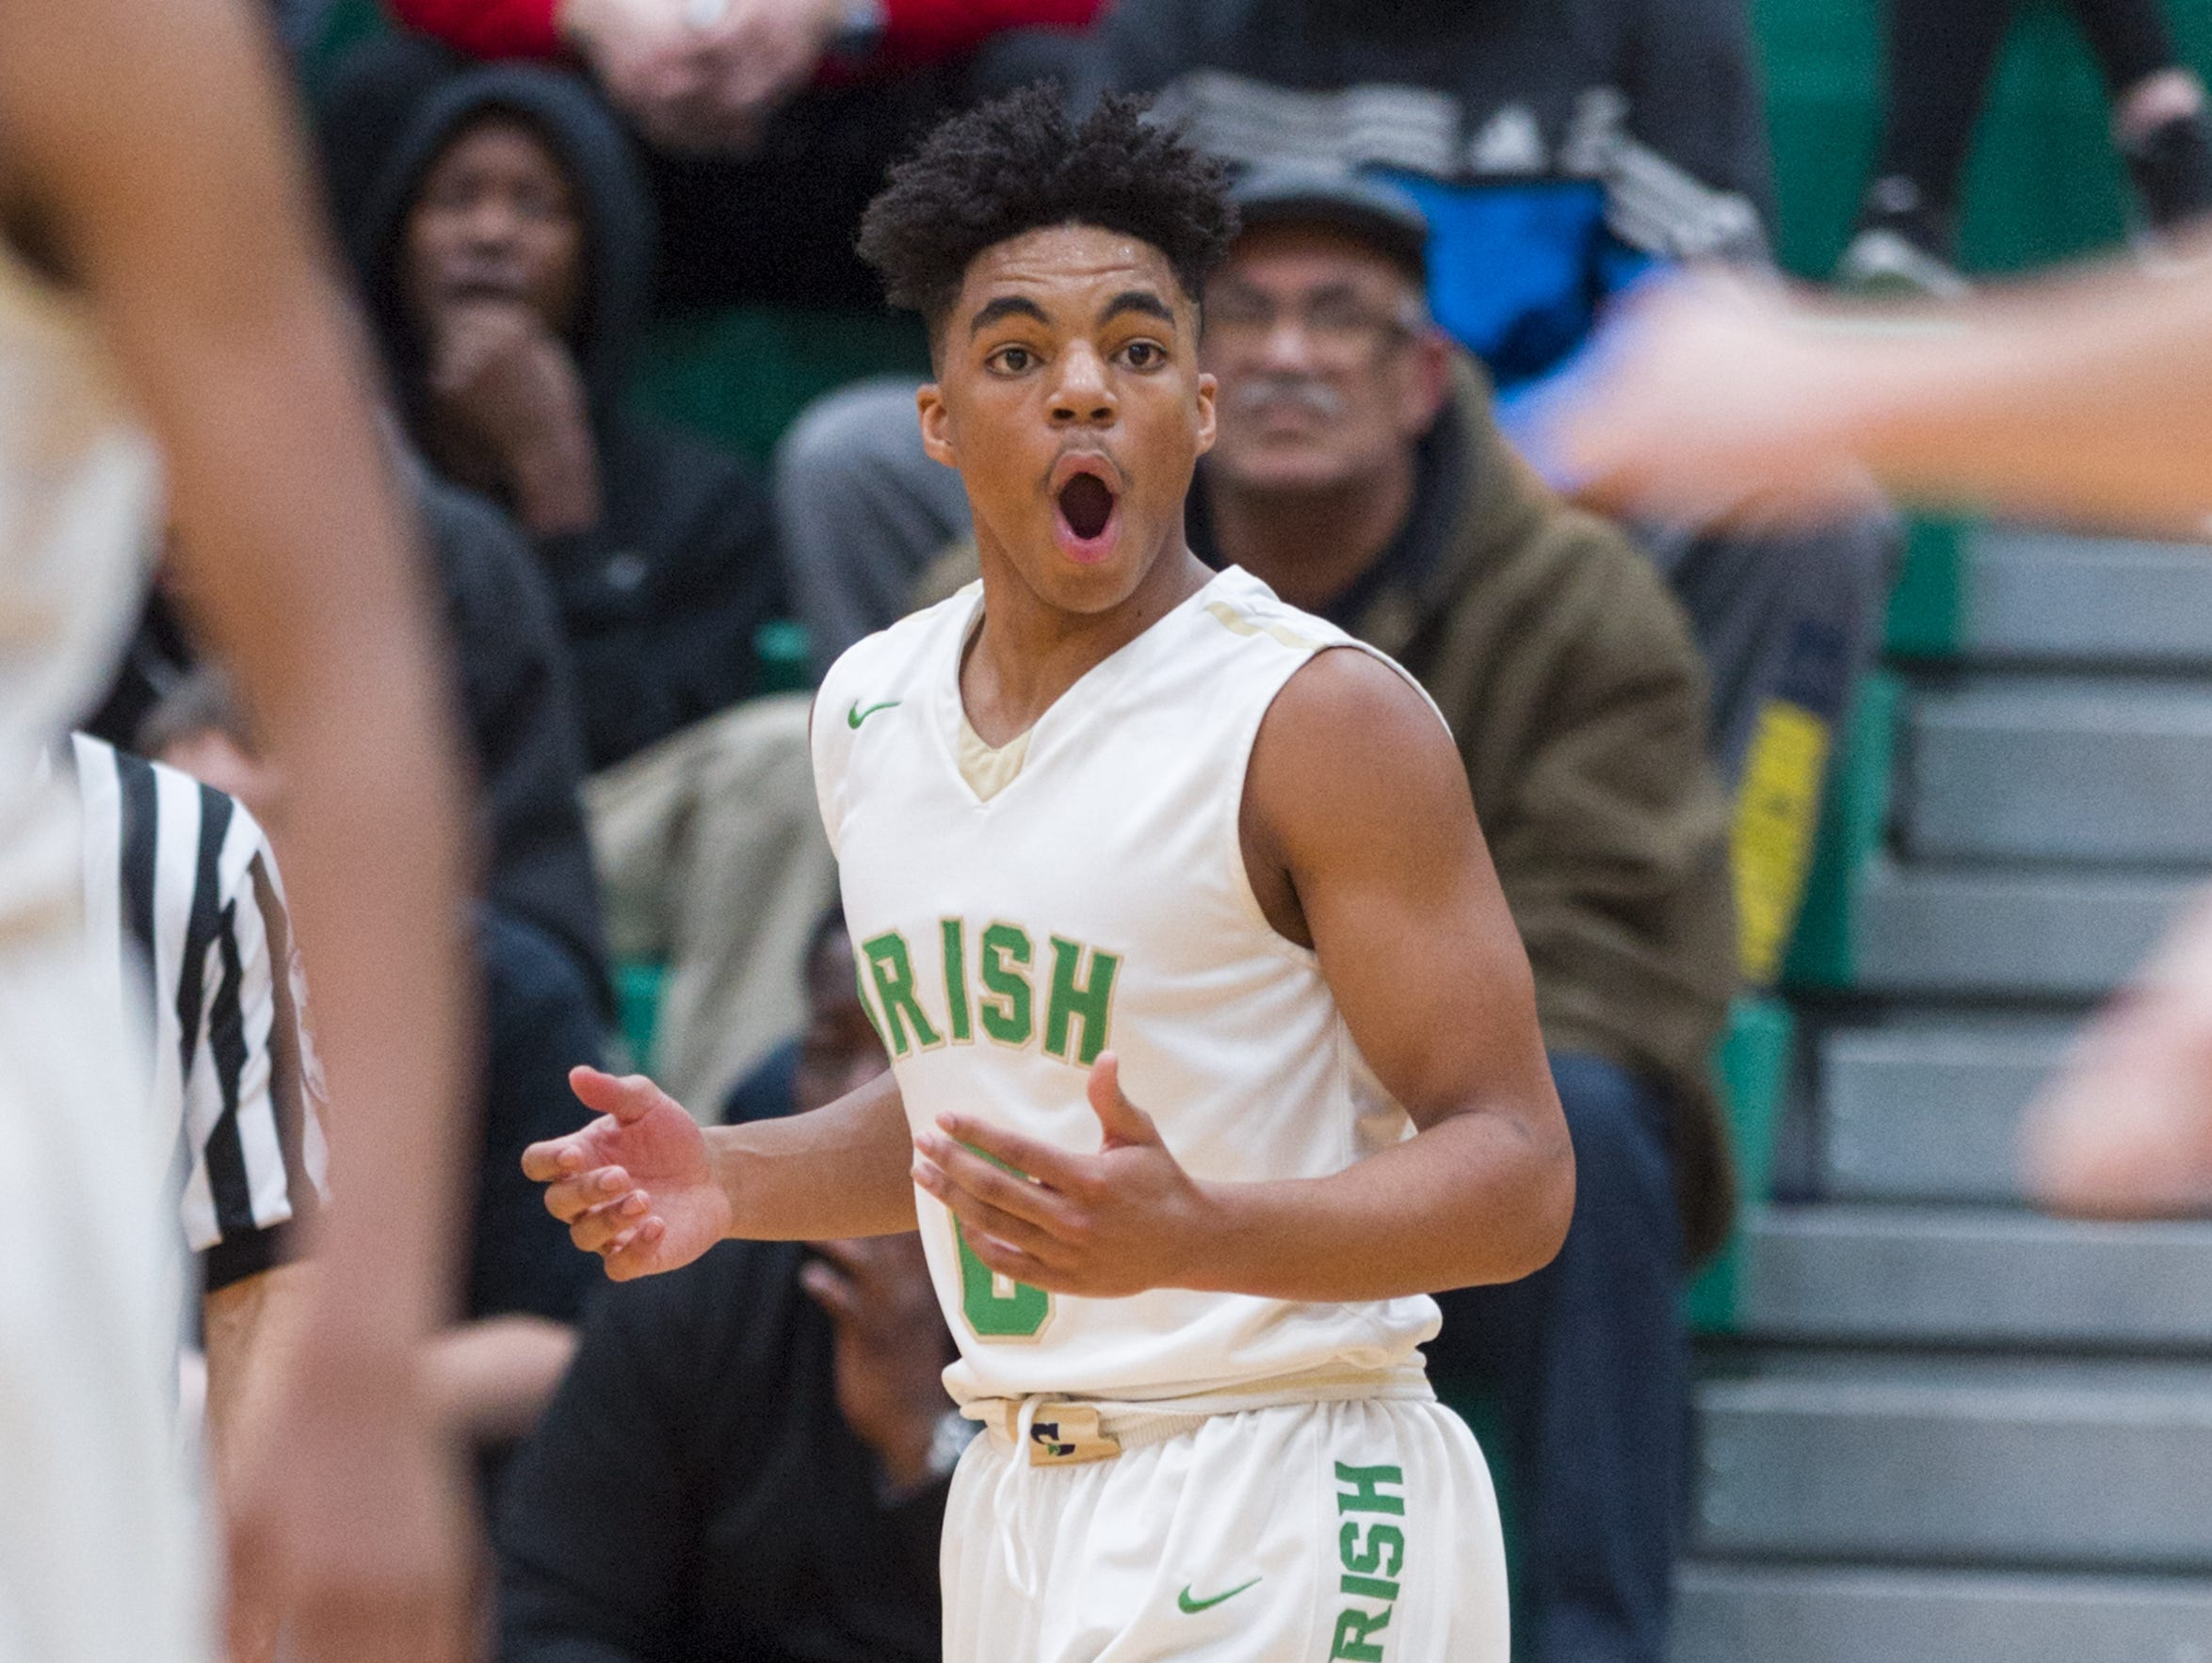 Cathedral High School sophomore James Franklin (0) reacts to being called for traveling during the first half of the Indianapolis City Boy's Basketball Tournament championship game Monday, Jan. 23, 2017, at Arsenal Tech High School.